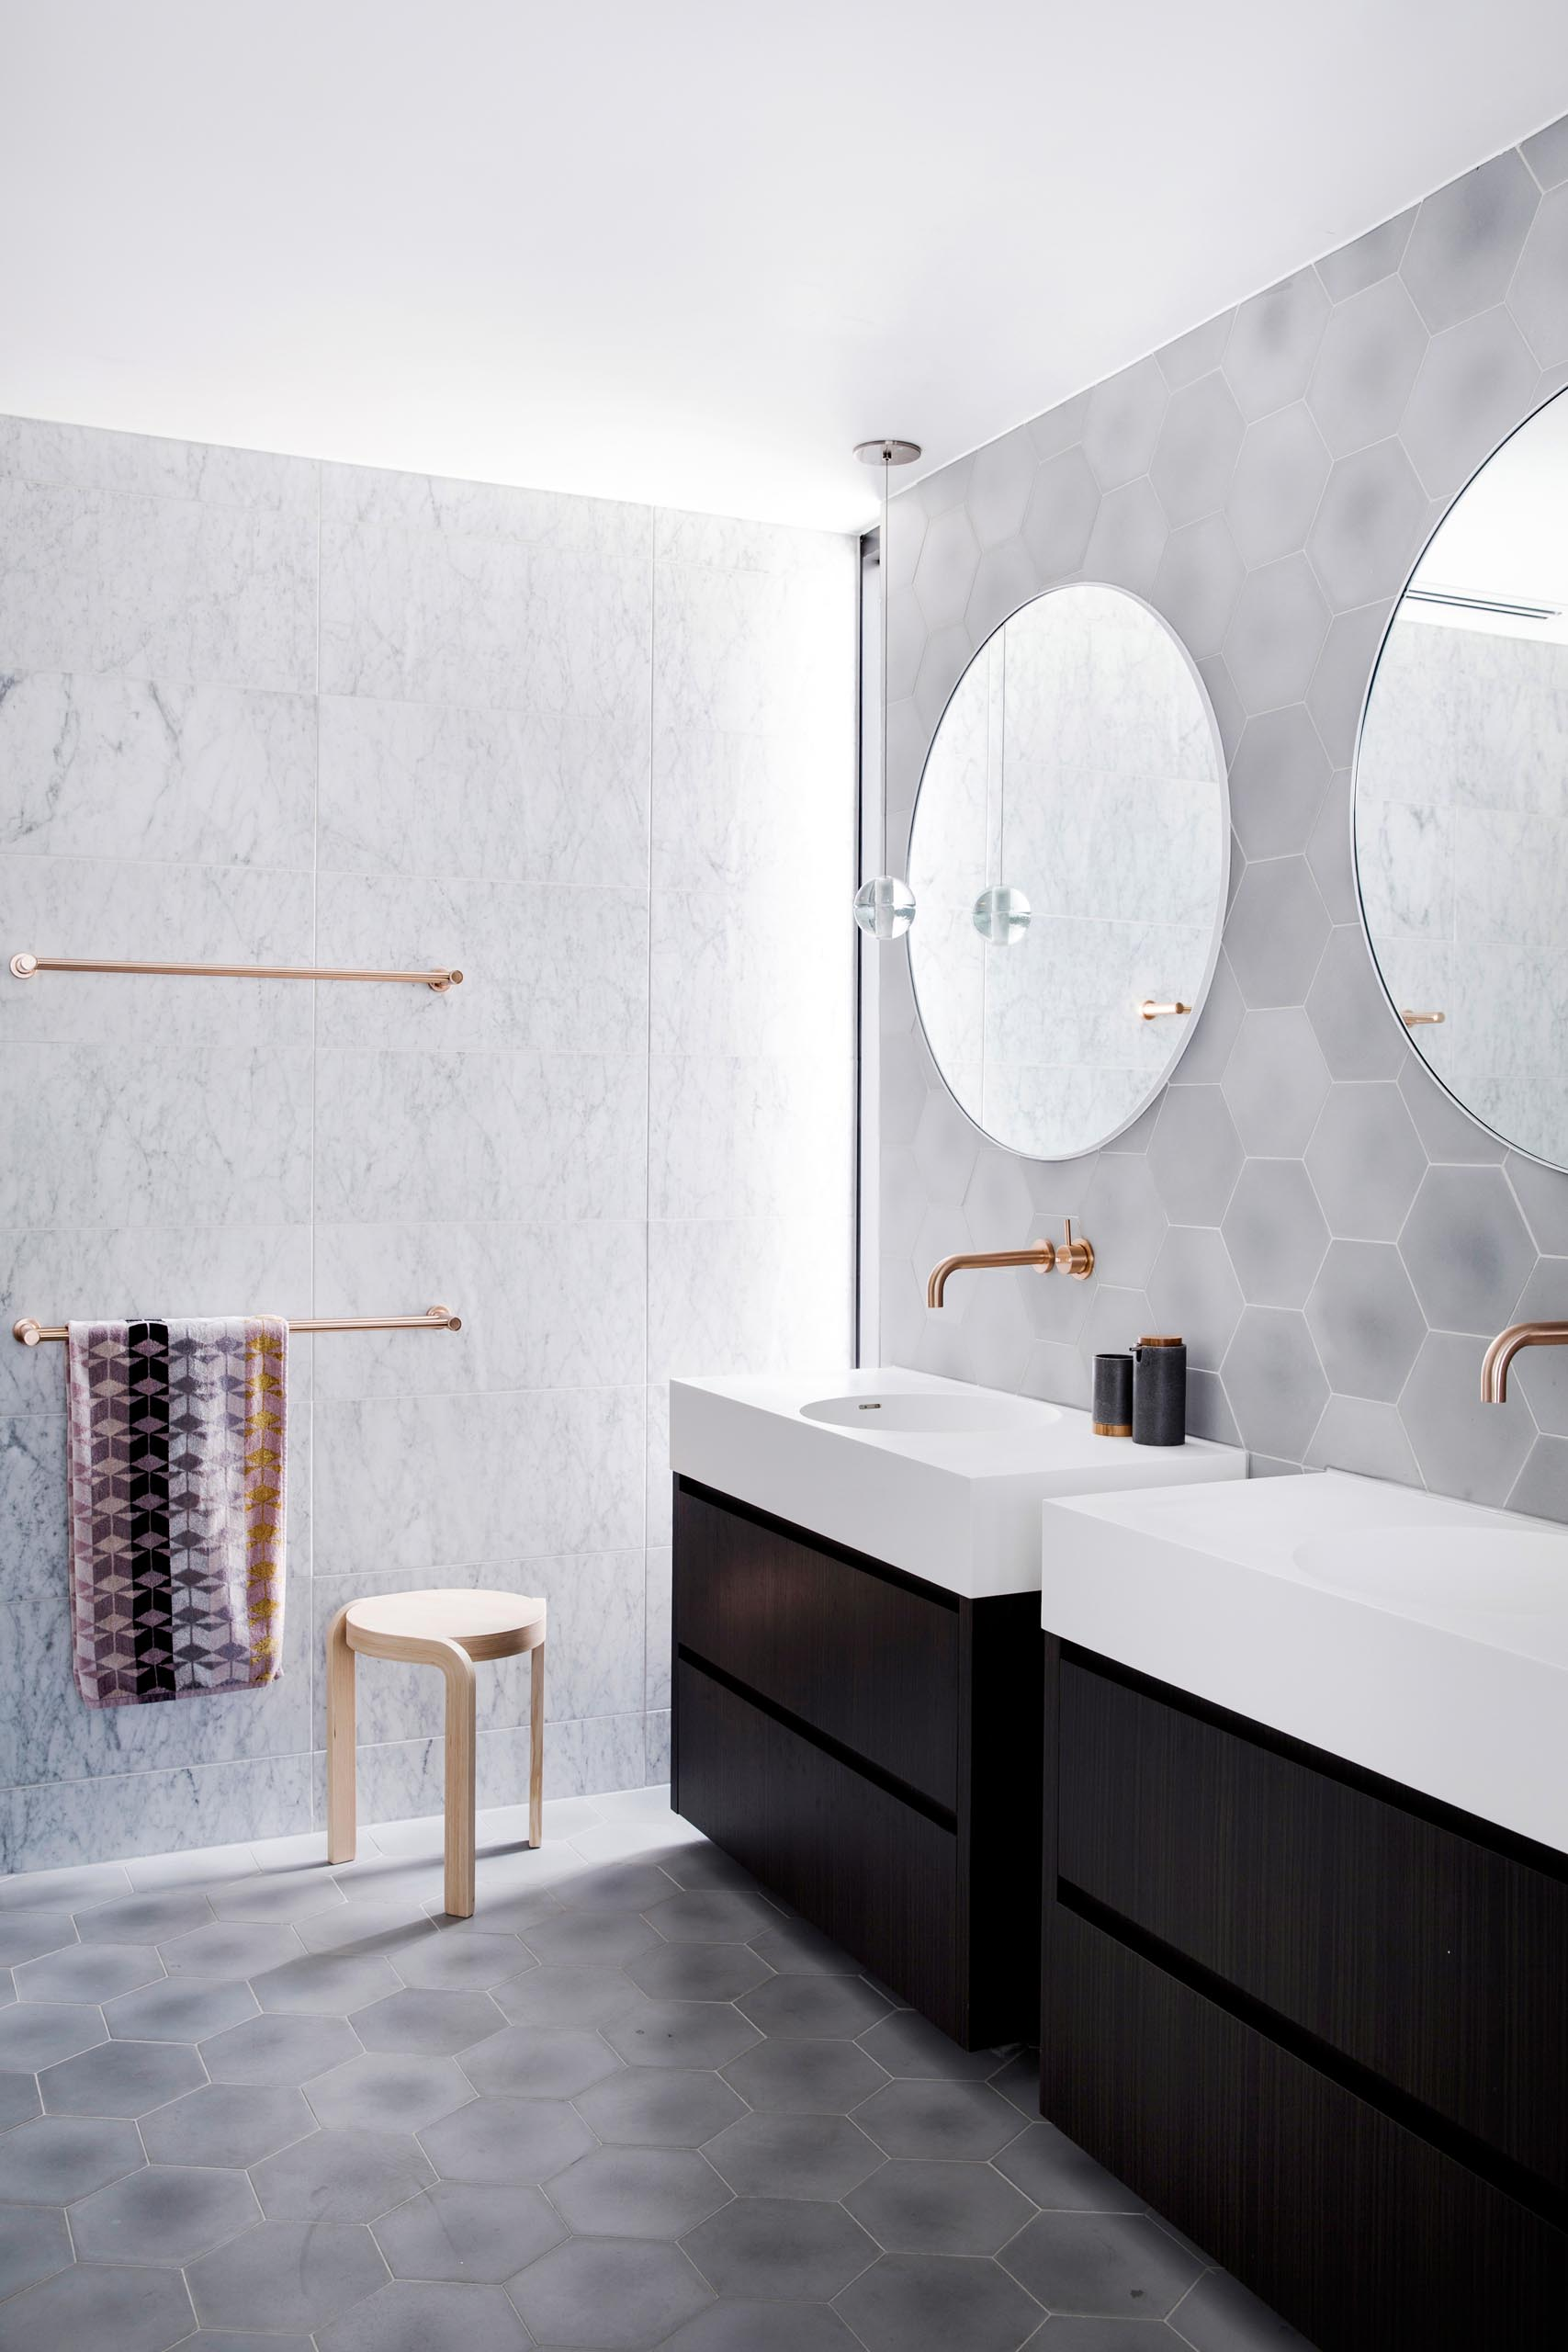 Stepping inside this master bathroom, natural light from the tall narrow window in the corner highlights the brushed rose gold towel bars mounted to the wall, that's covered with large format tiles.